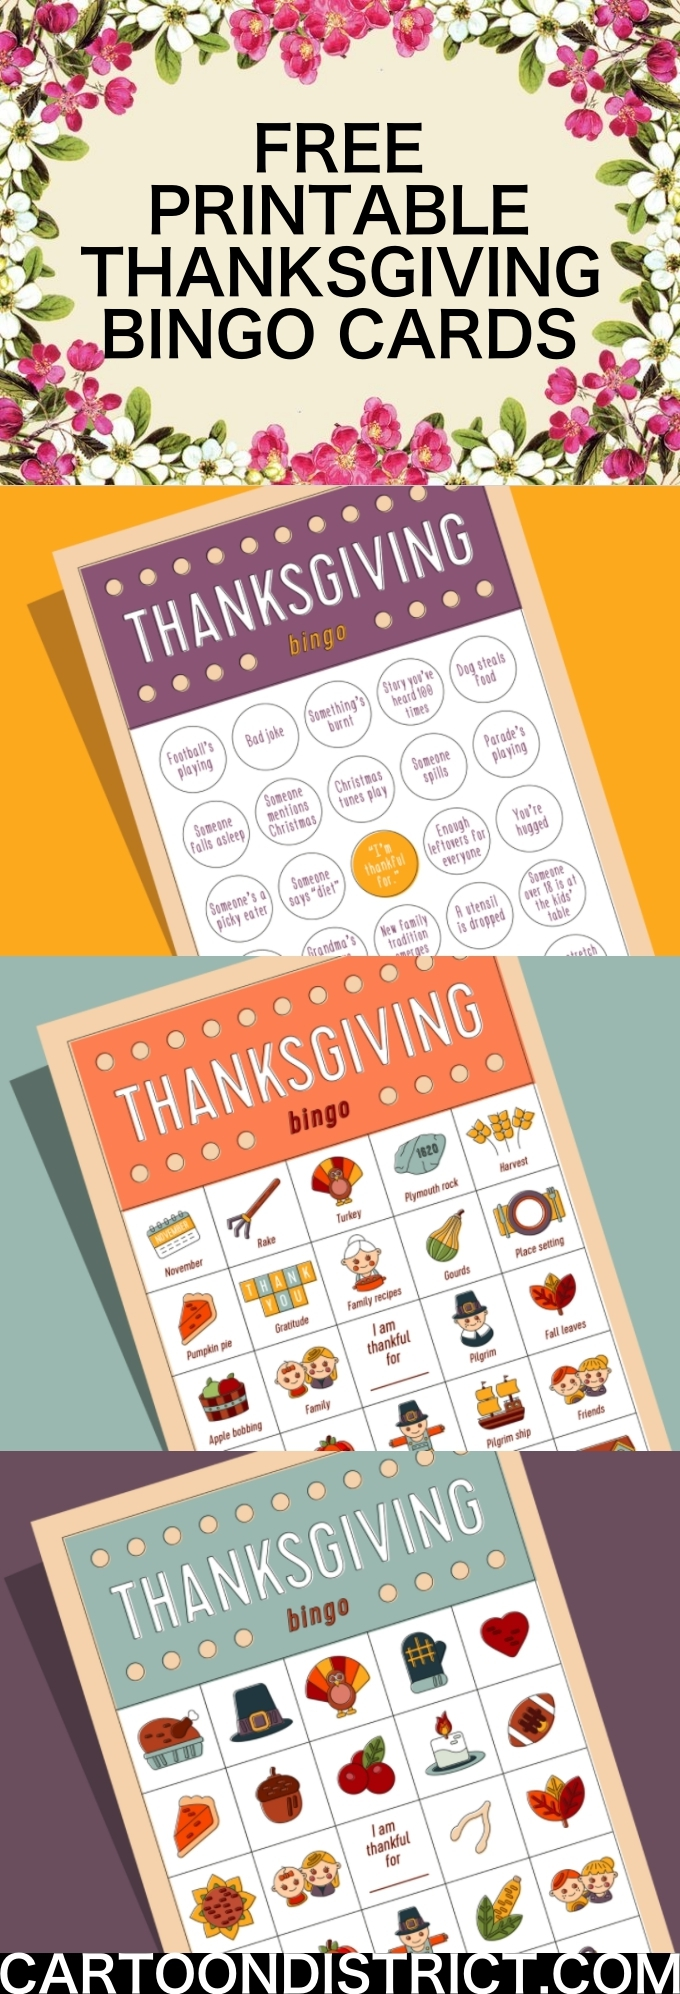 Free Printable Thanksgiving Bingo Cards for Kids and Adults